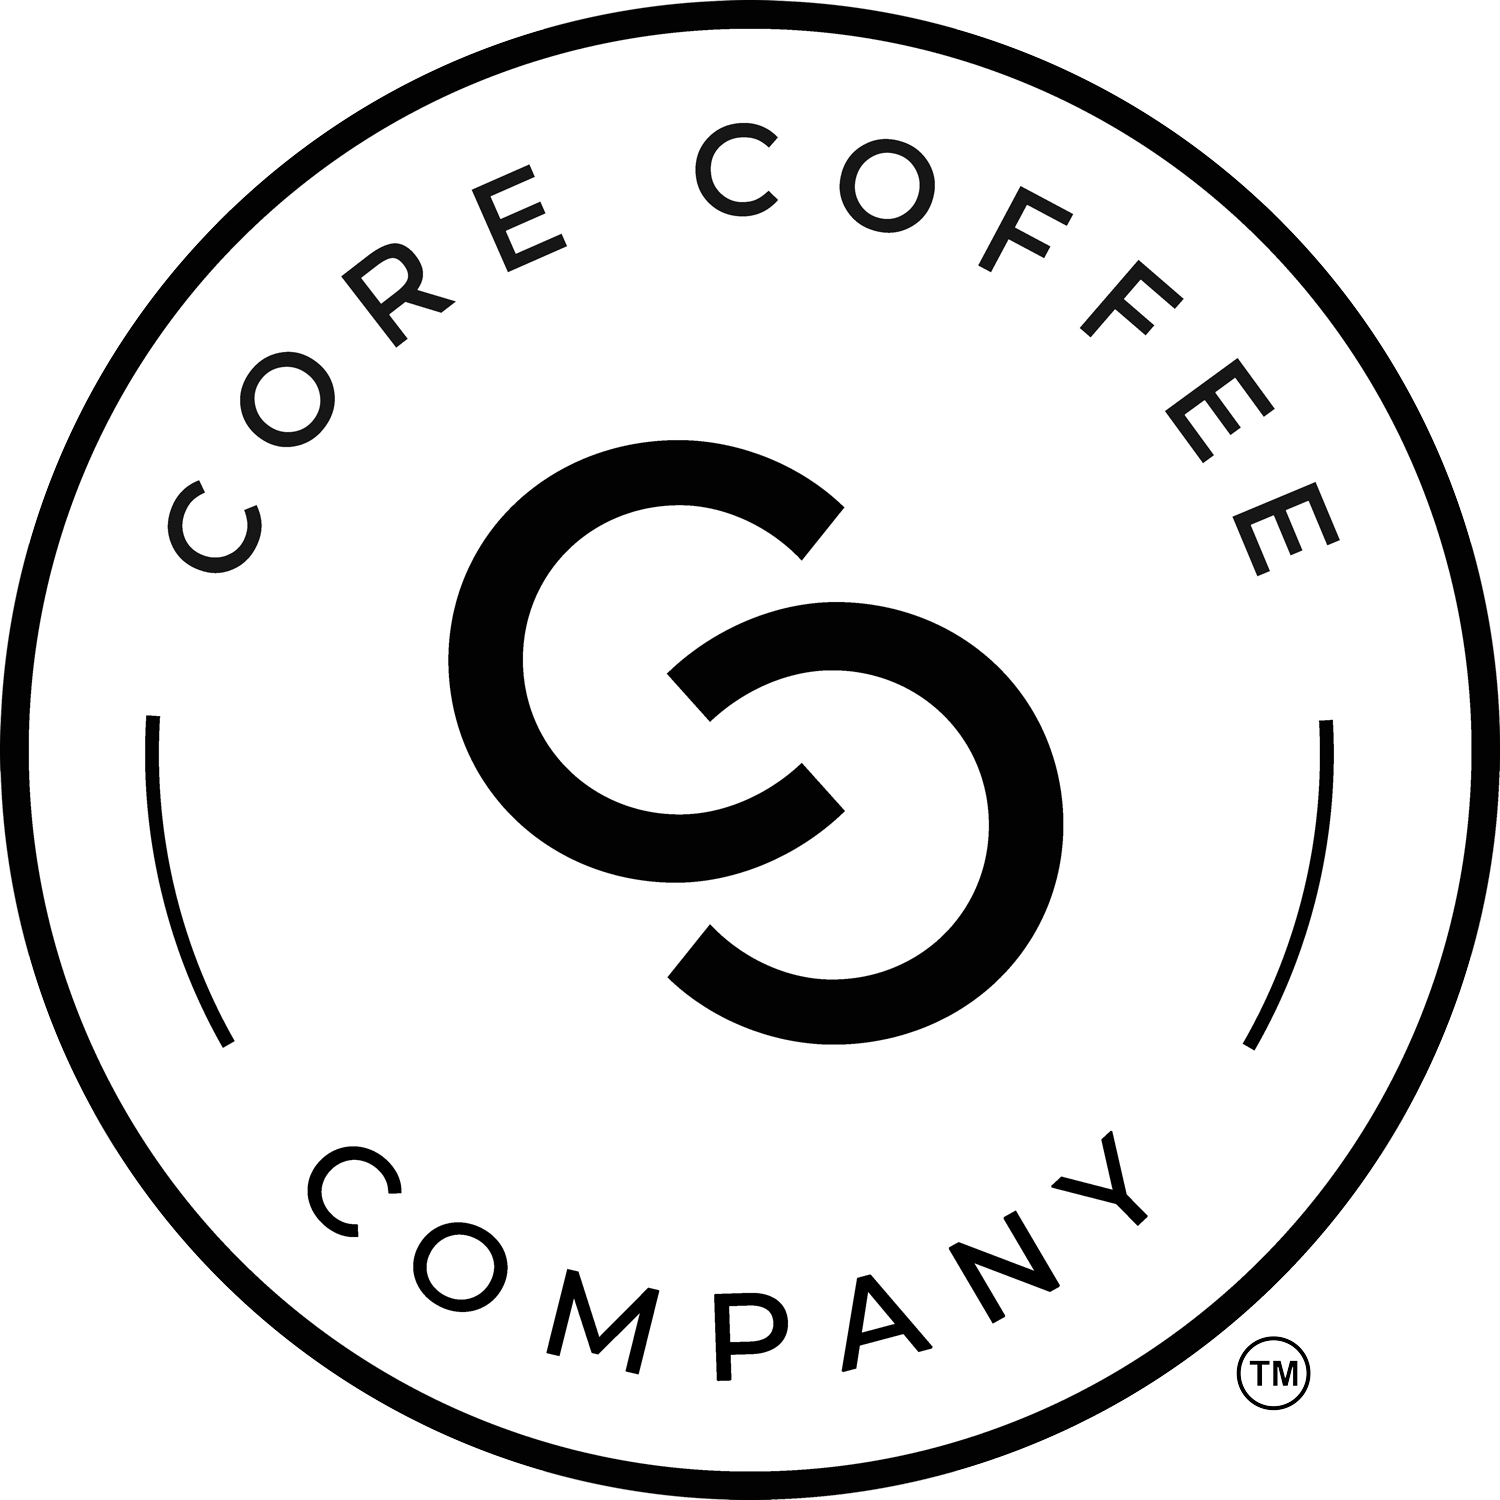 CORE Coffee logo